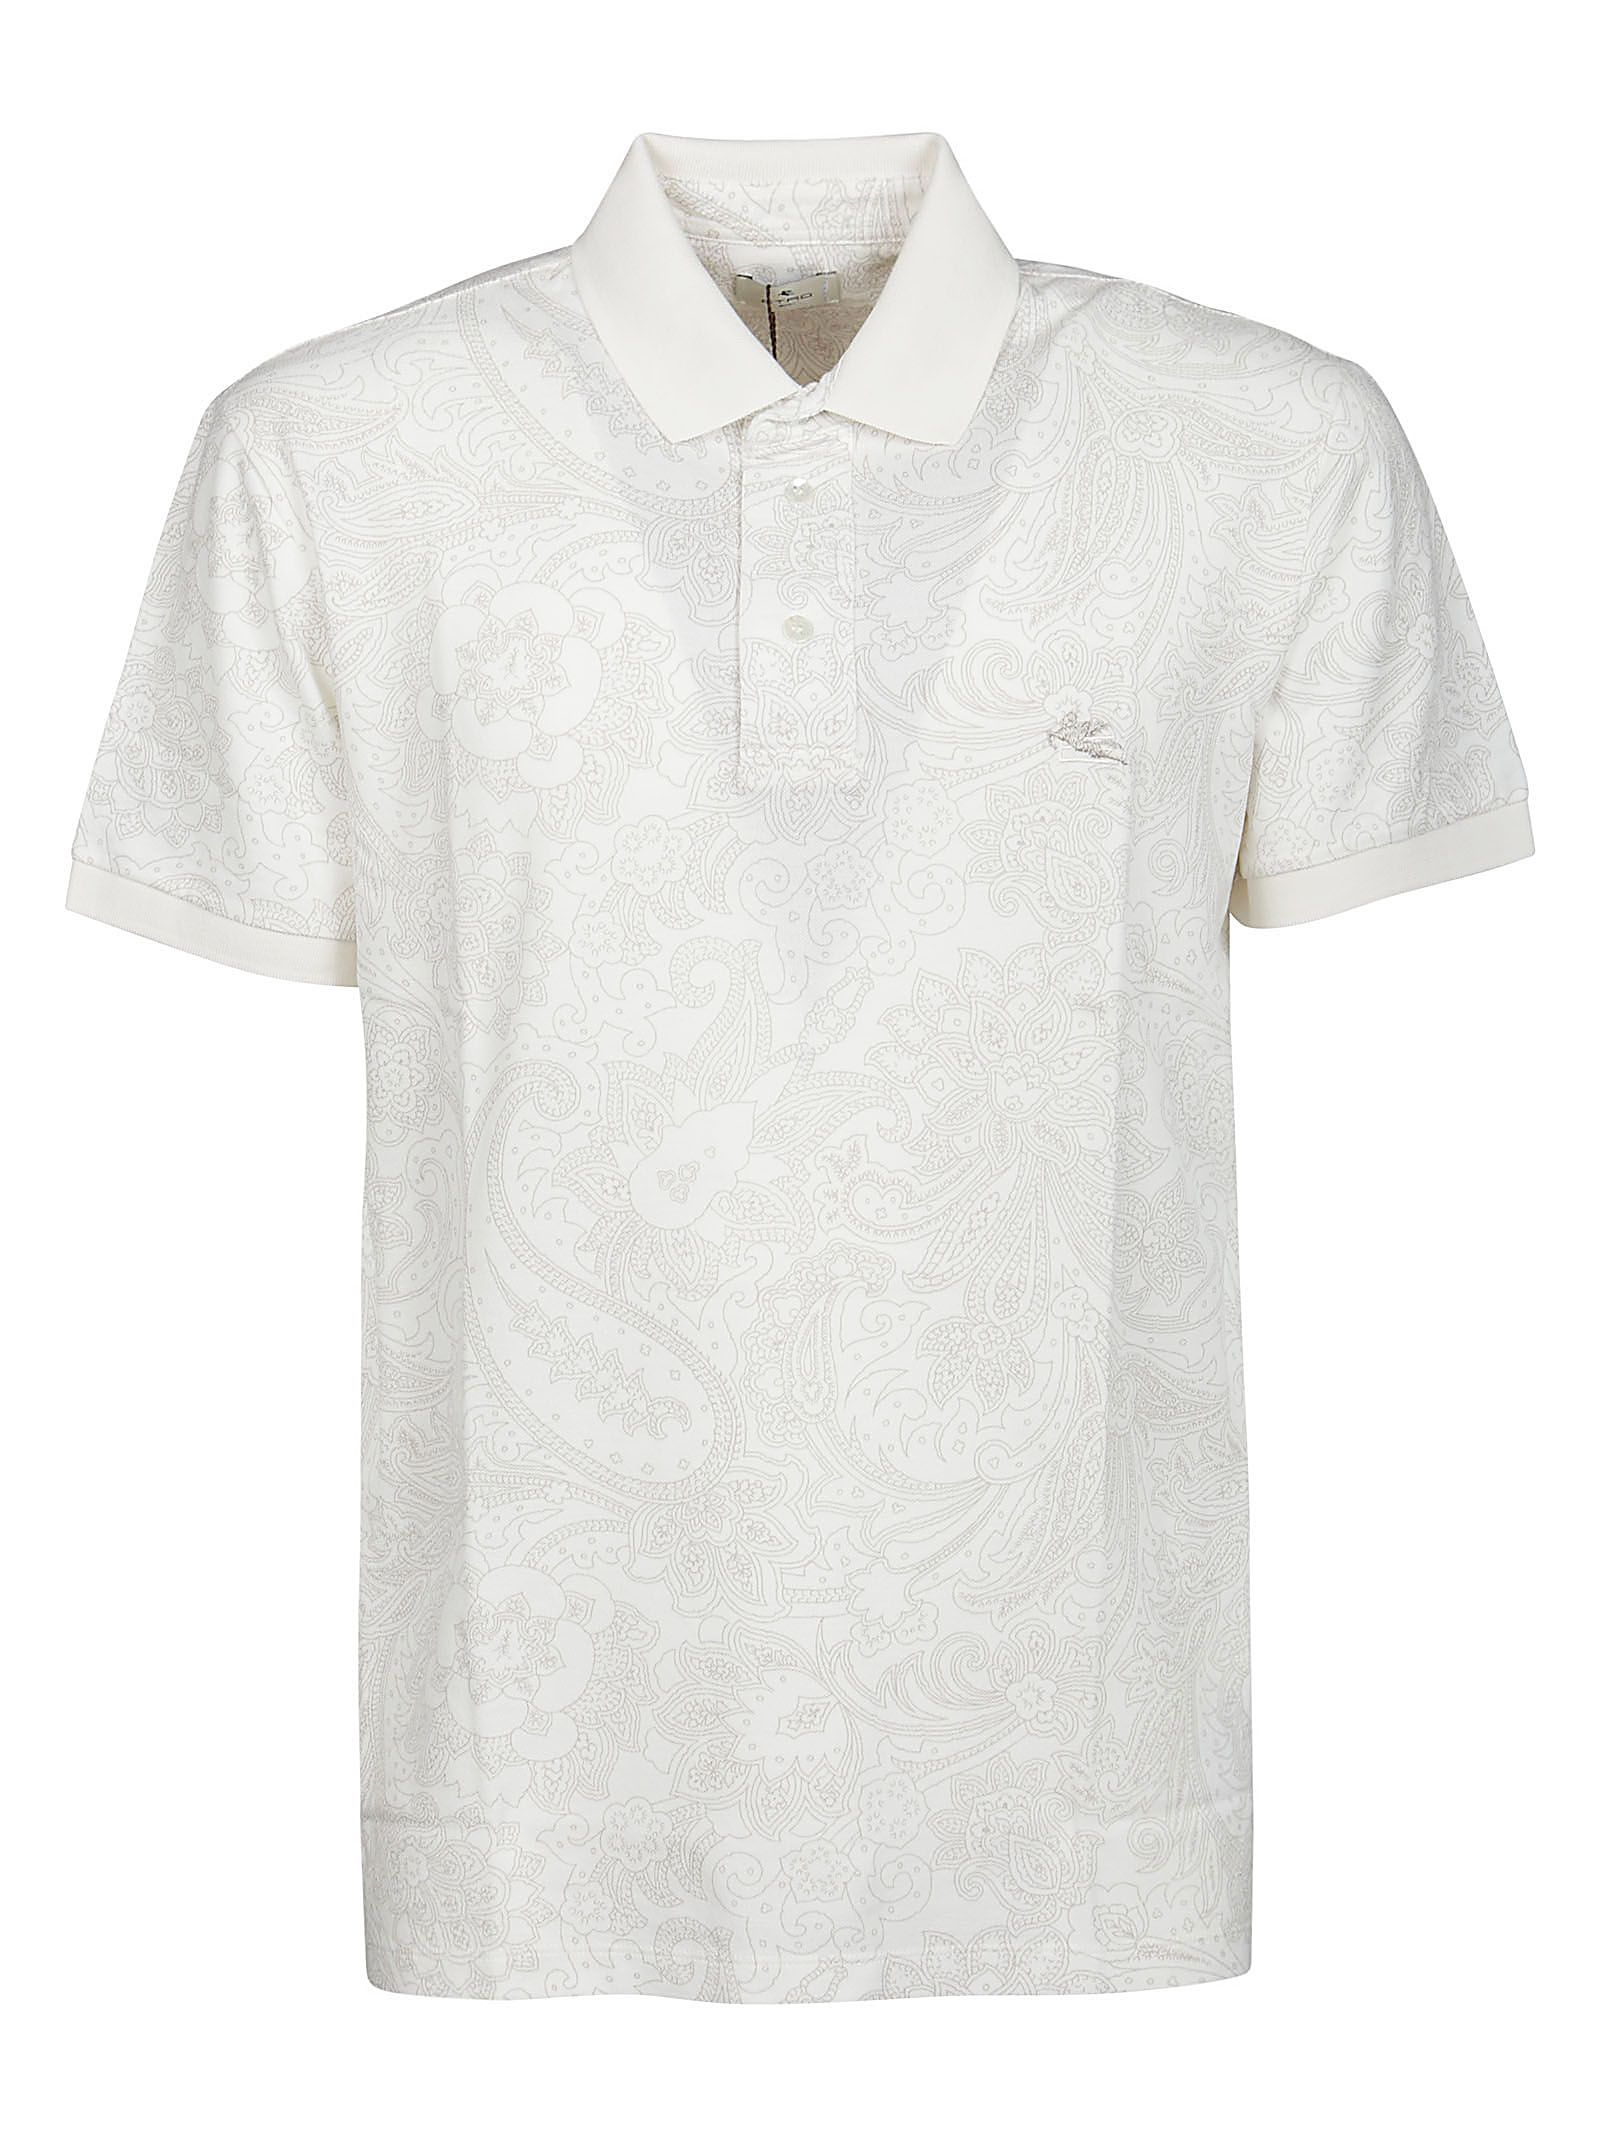 Etro Tops ETRO MEN'S 1Y80099810991 WHITE OTHER MATERIALS POLO SHIRT